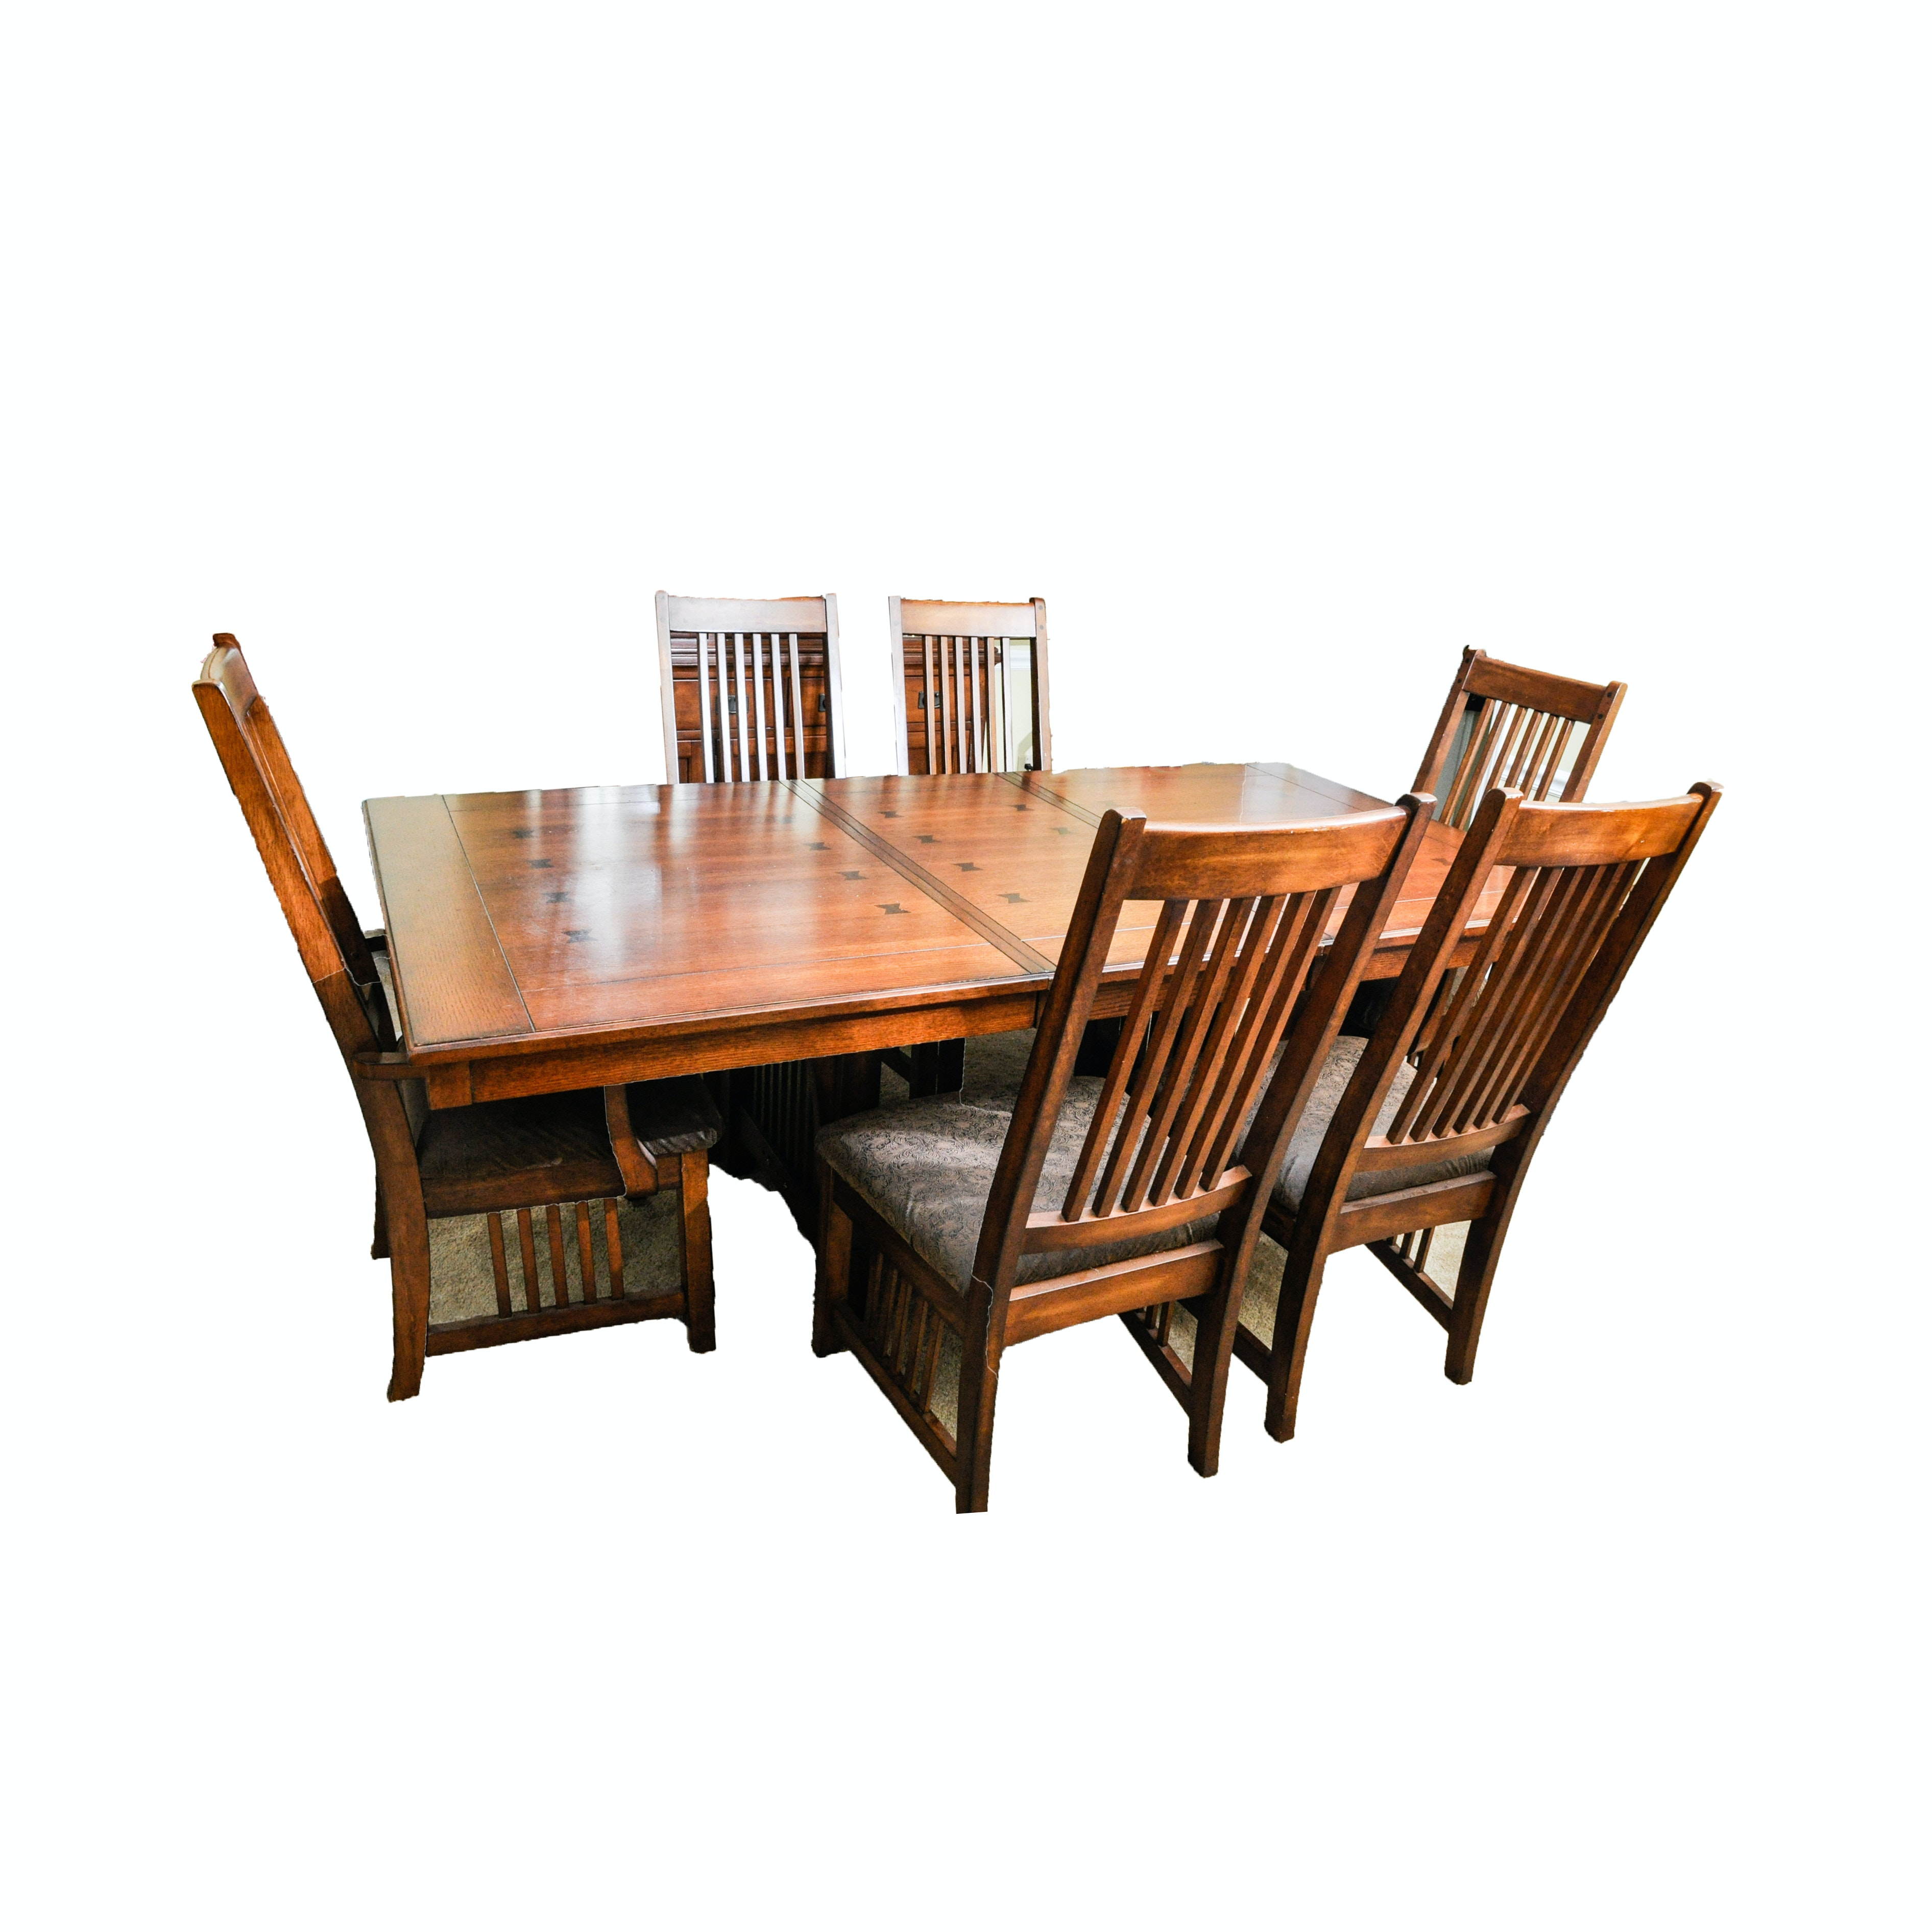 Arts-and-Crafts Style Dining Table and Six Chairs